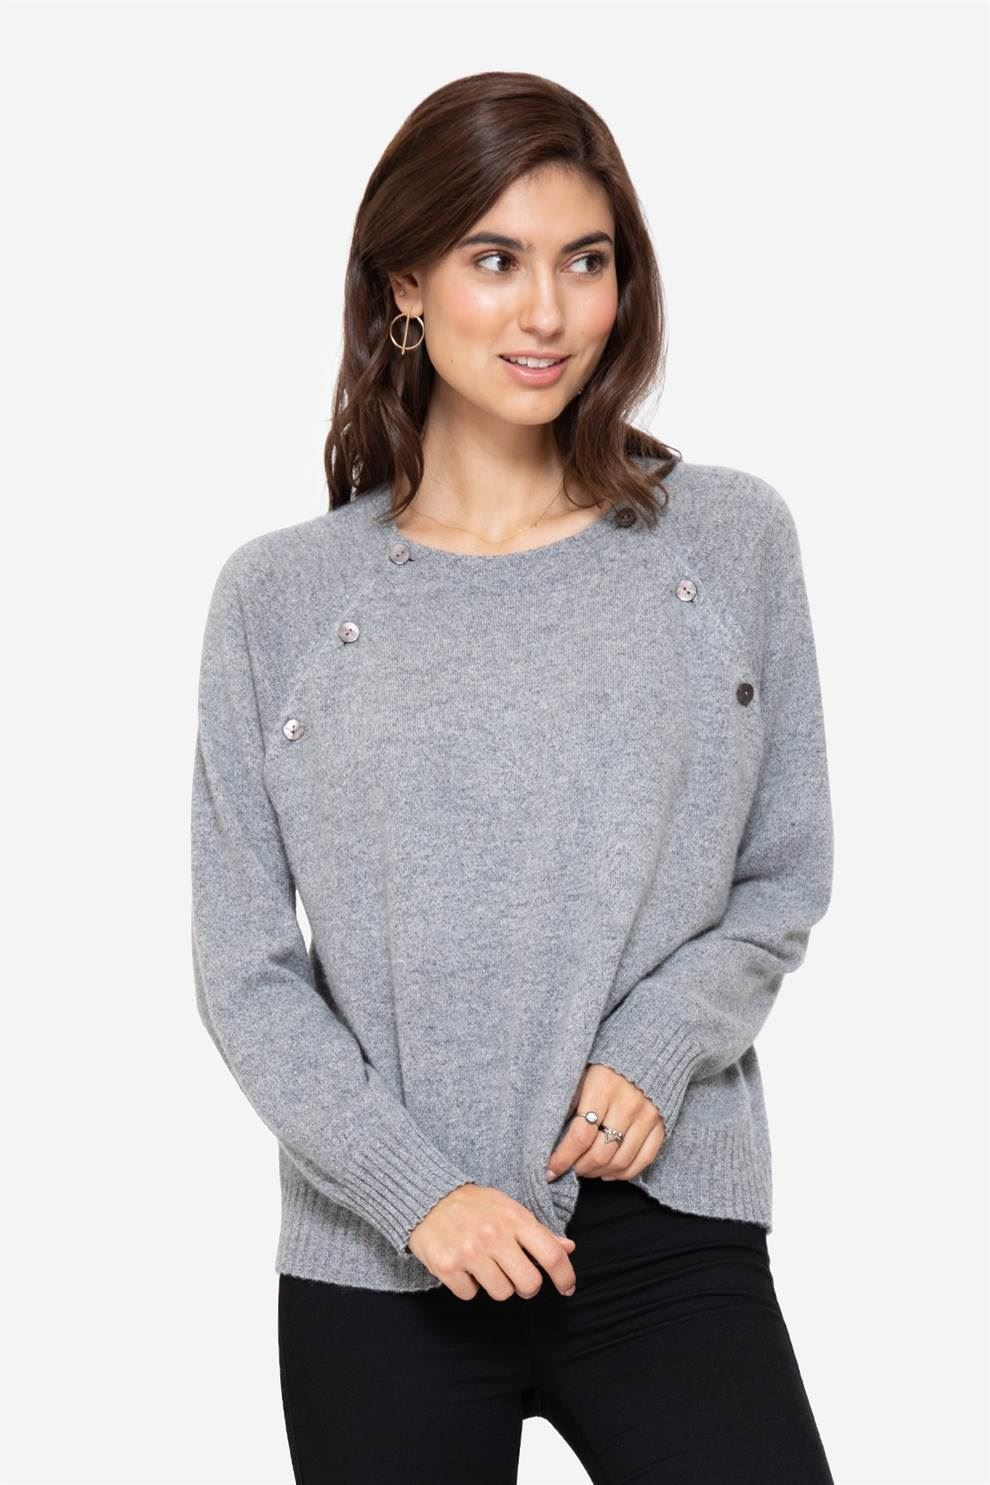 Grey soft cashmere nursing jumper with buttons, front view